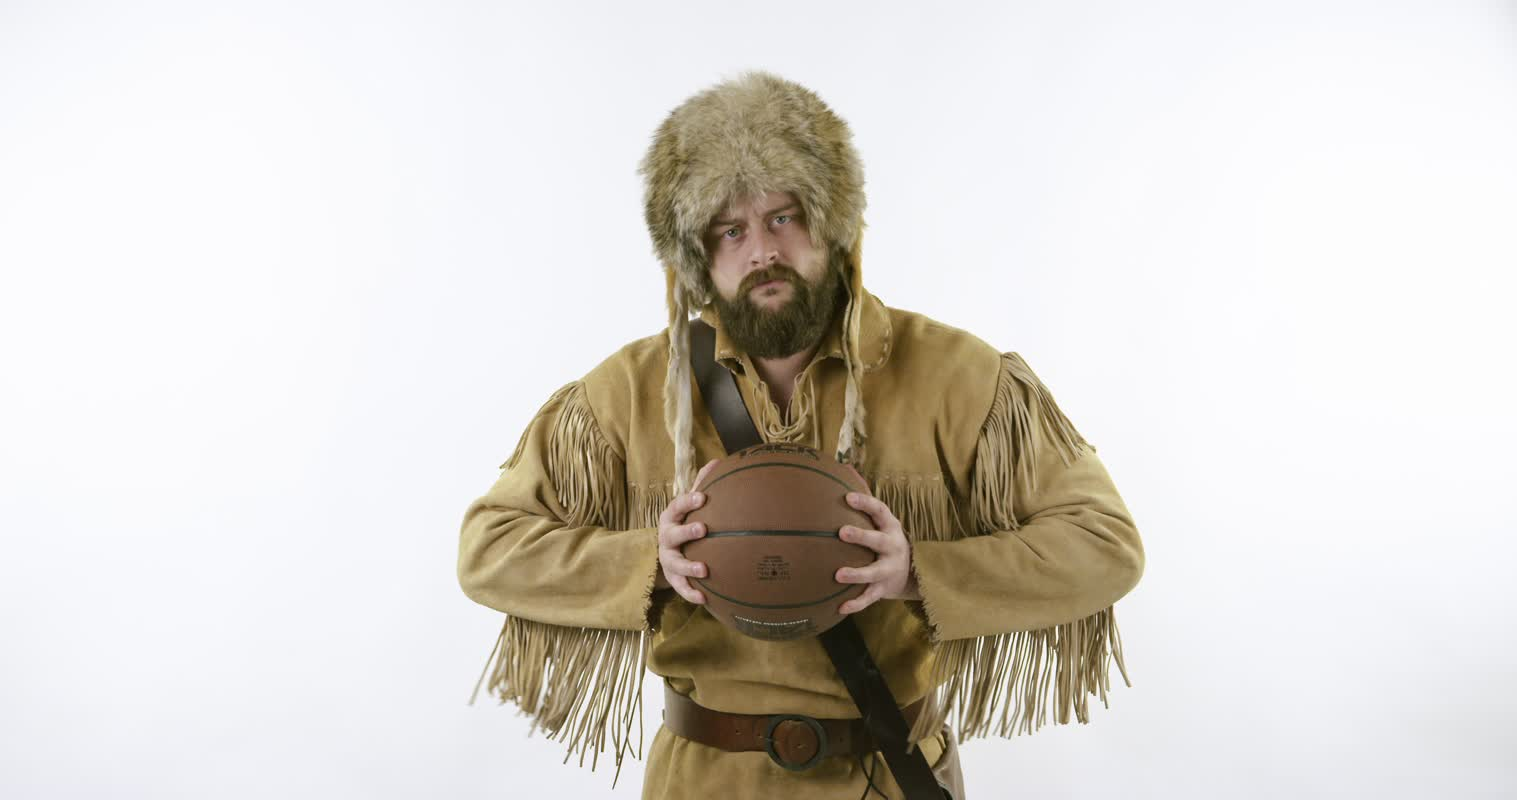 Old Trapper Announces 2021 Sponsorship of Inside College Basketball on the CBS Sports Network